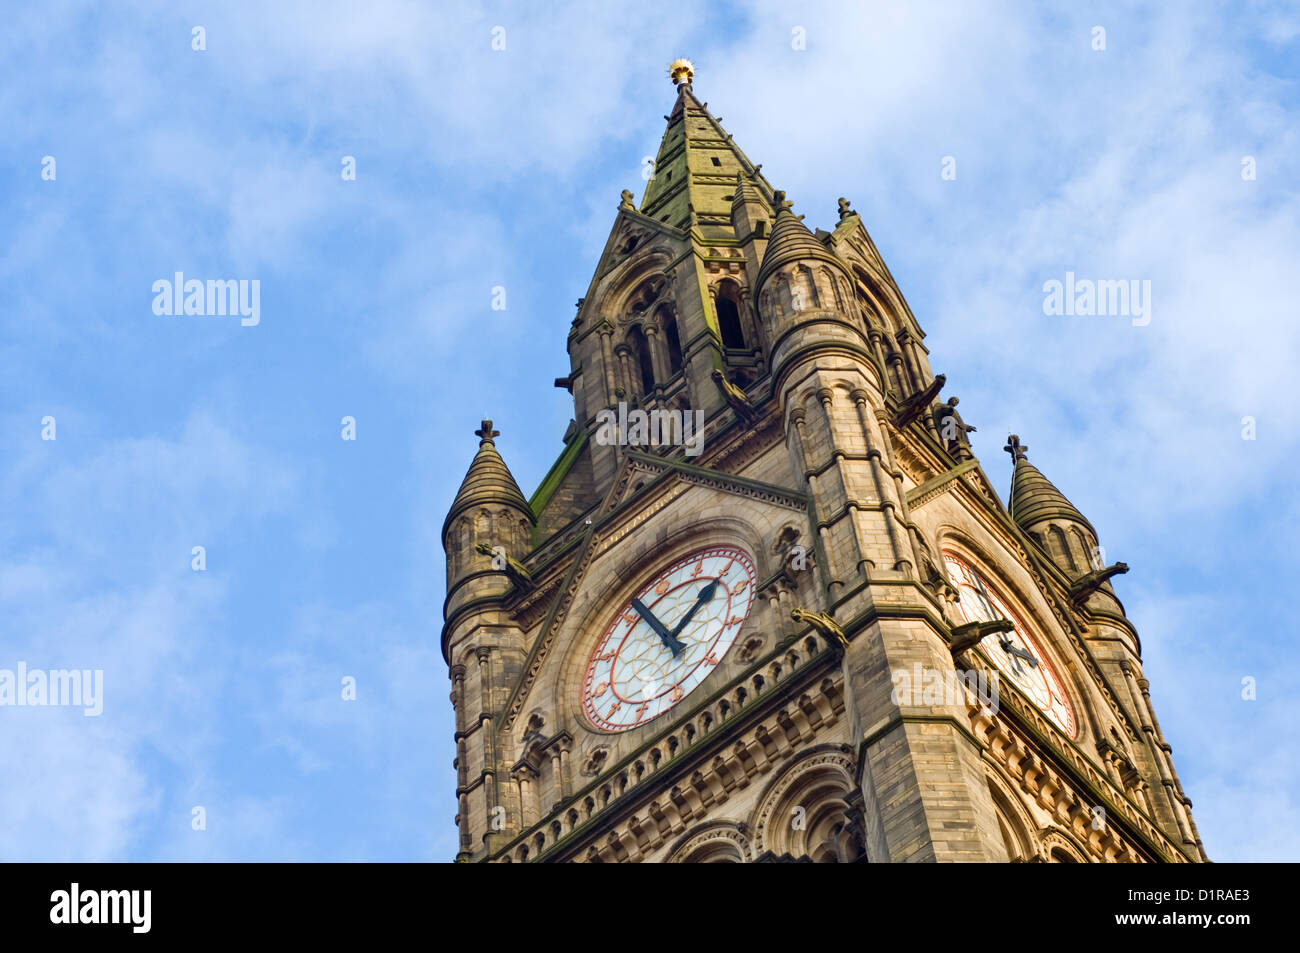 The clock tower of Manchester town hall in Albert Square, England, UK - Stock Image